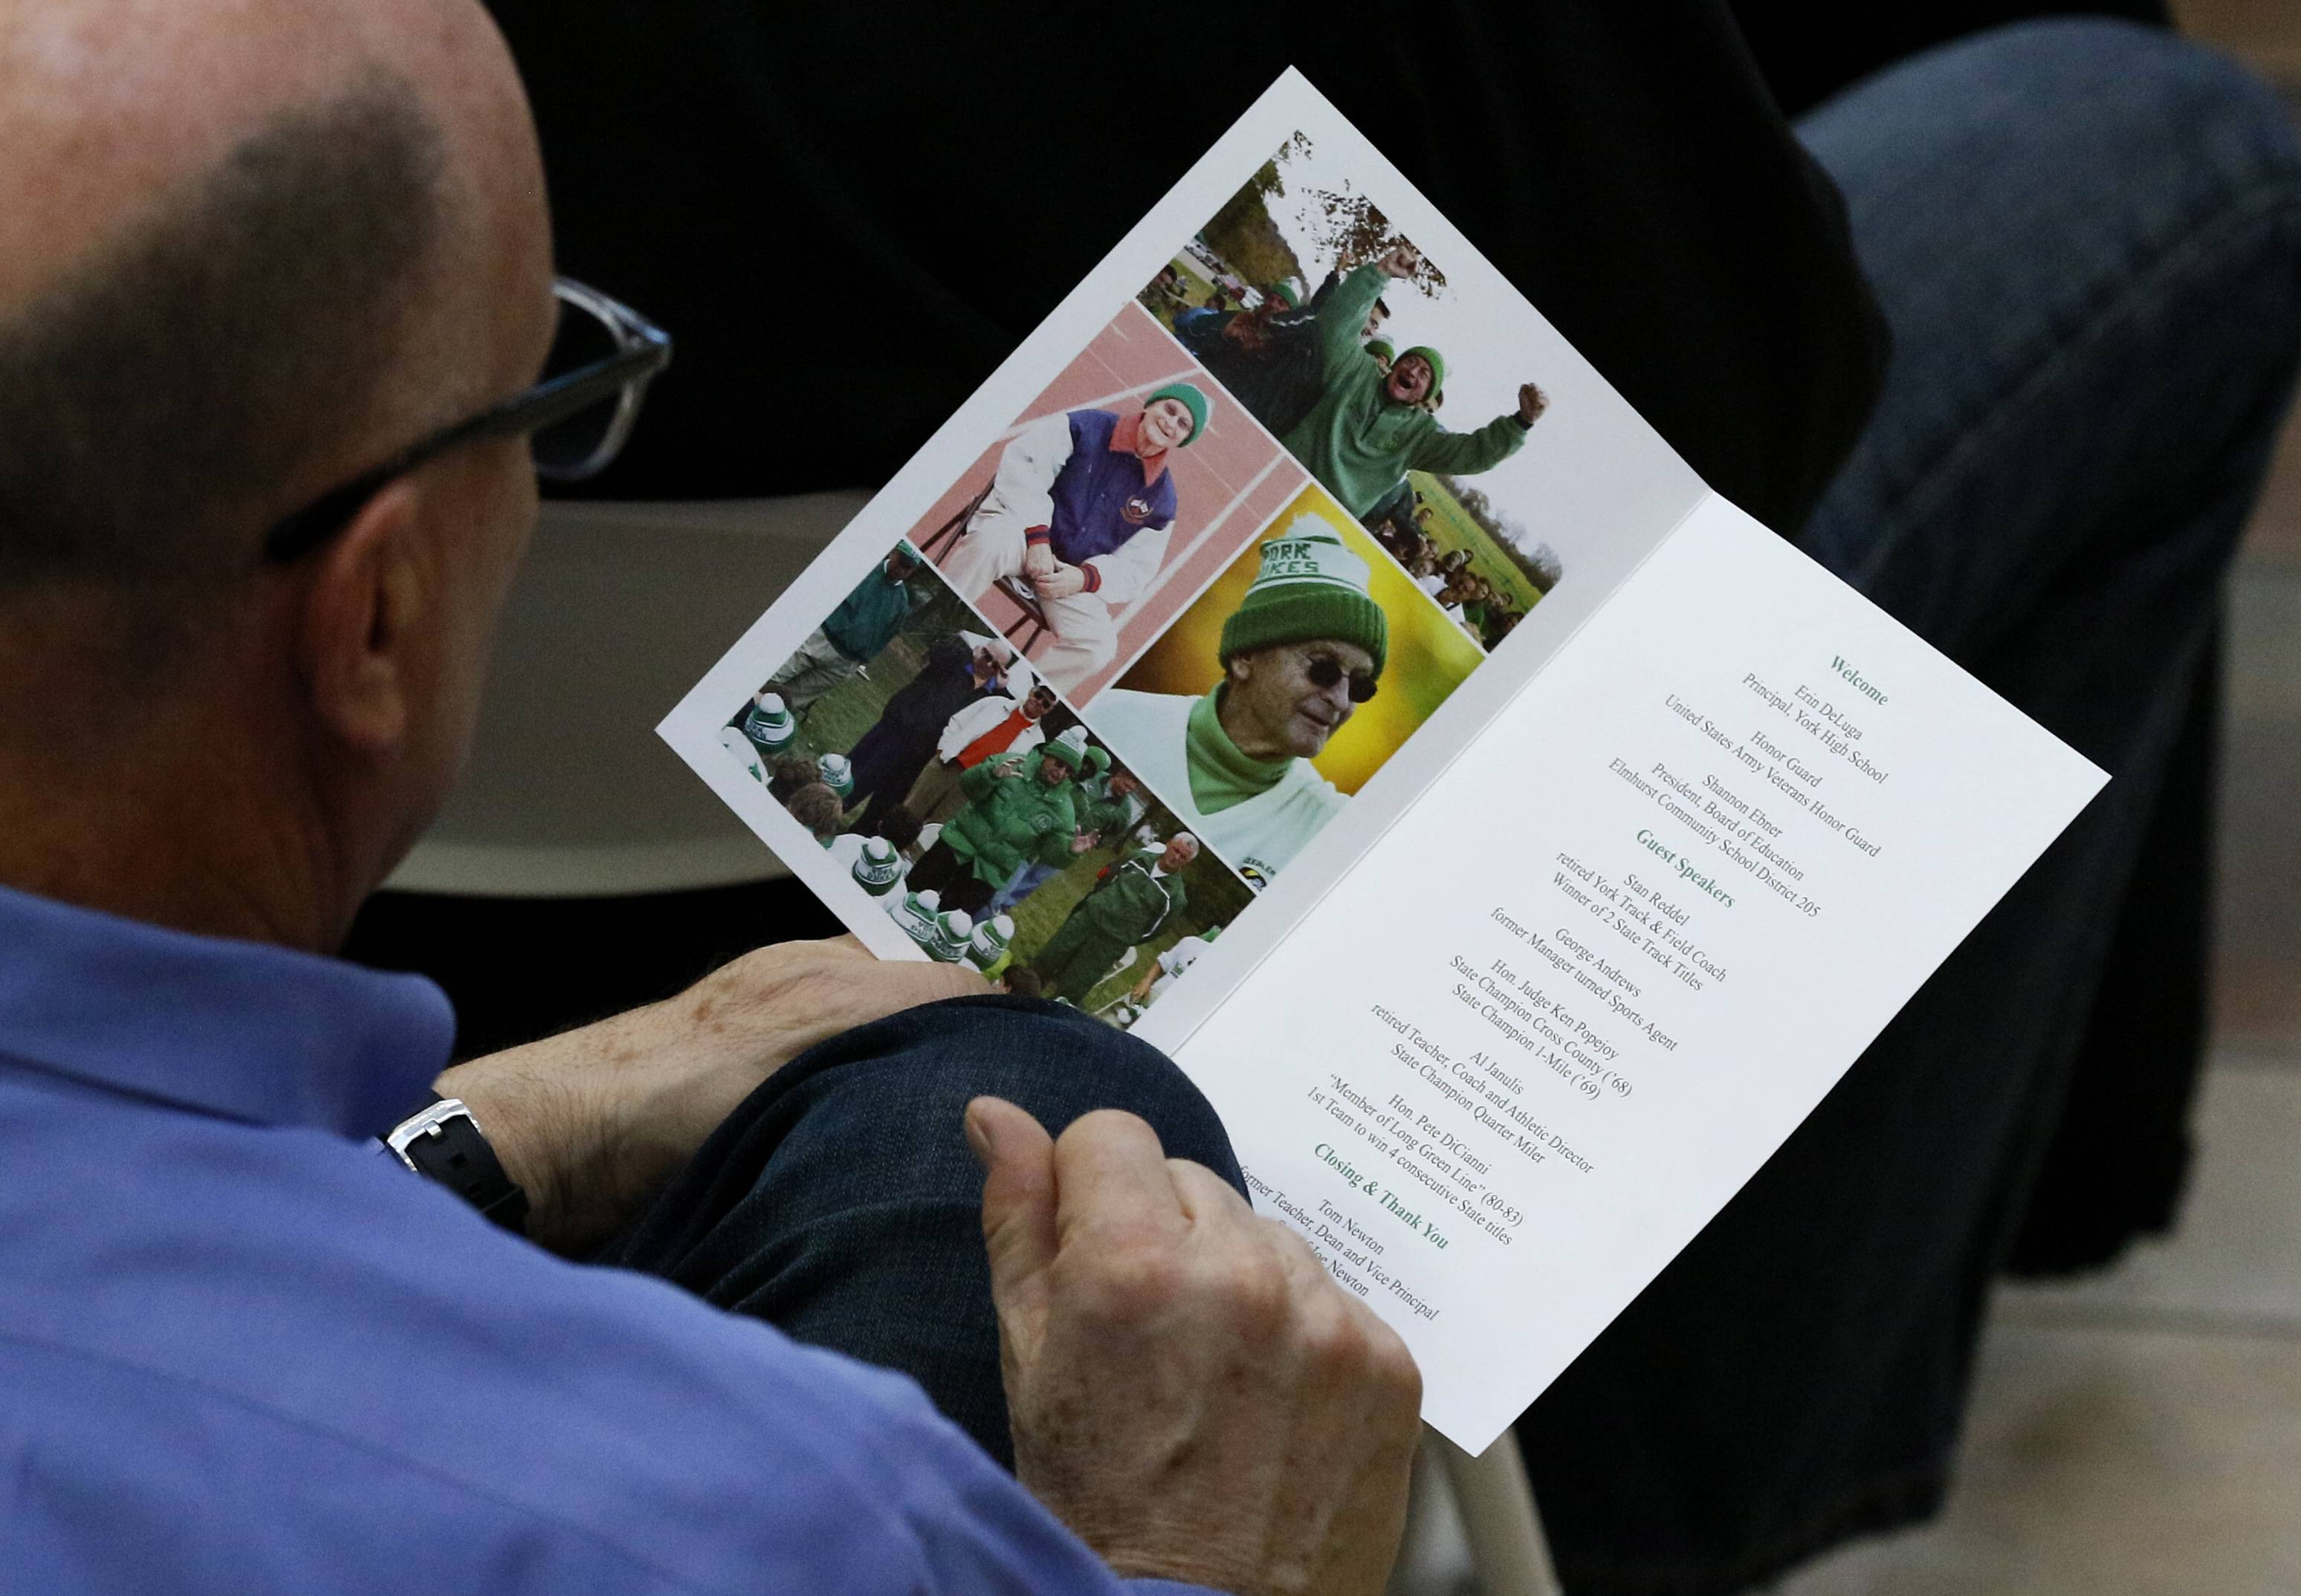 Hundreds of former athletes and friends returned to York High School to celebrate the life of cross-country coach Joe Newton, who inspired students during his 61 years of teaching and coaching.